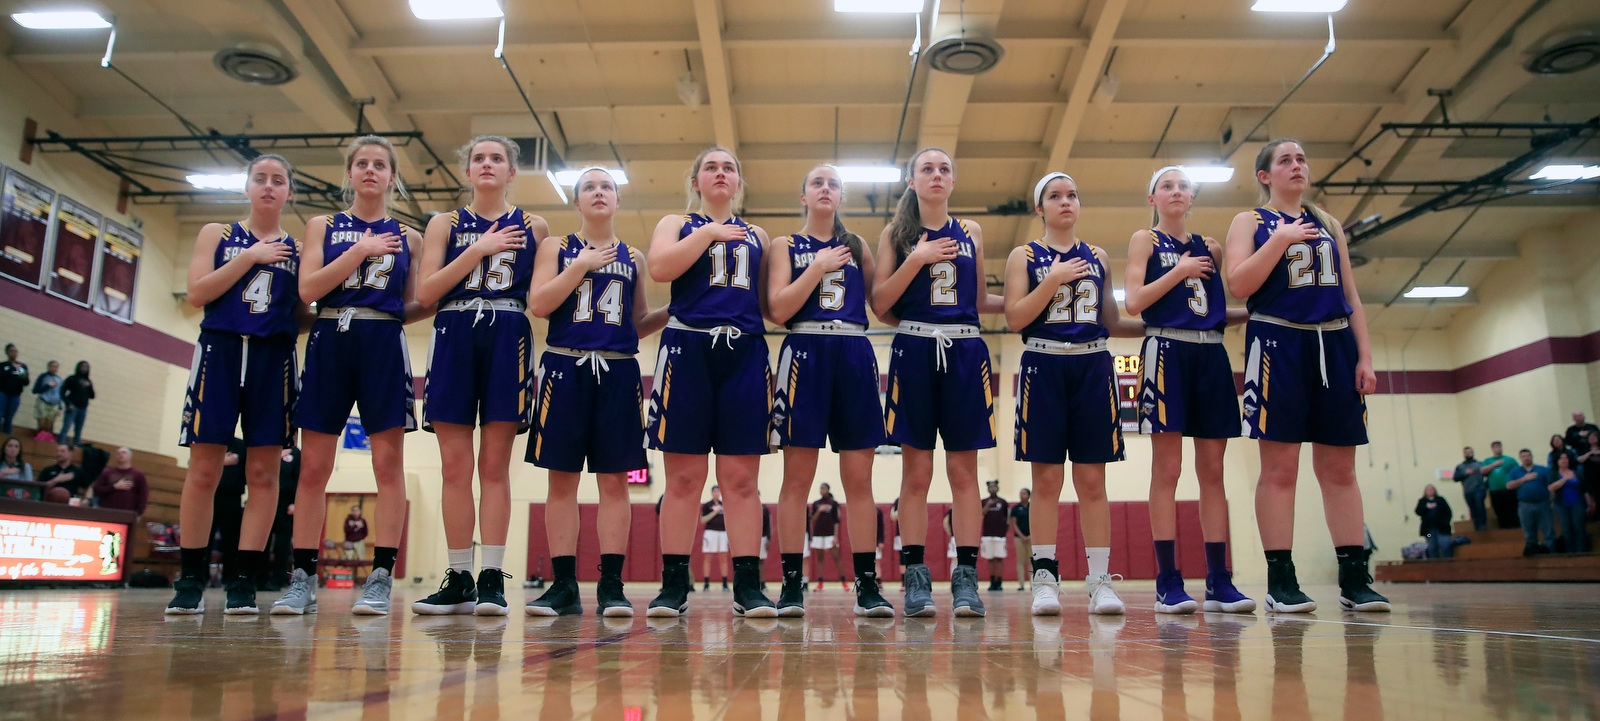 Springville players stand for the pledge prior to playing Cheektowaga.